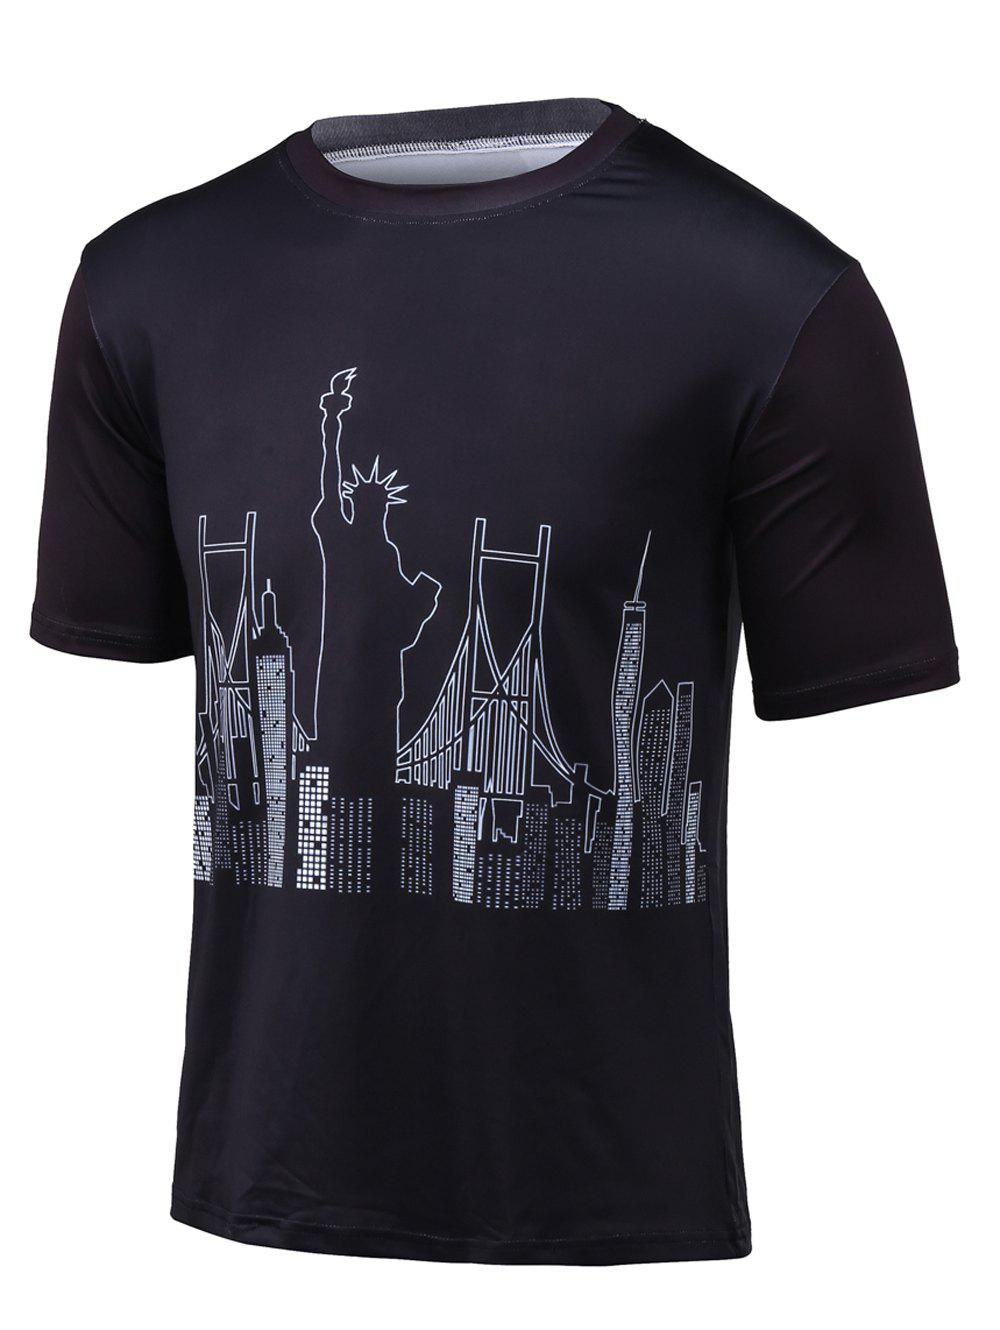 Statue of Liberty Print Round Neck Short Sleeve T-Shirt - BLACK 2XL